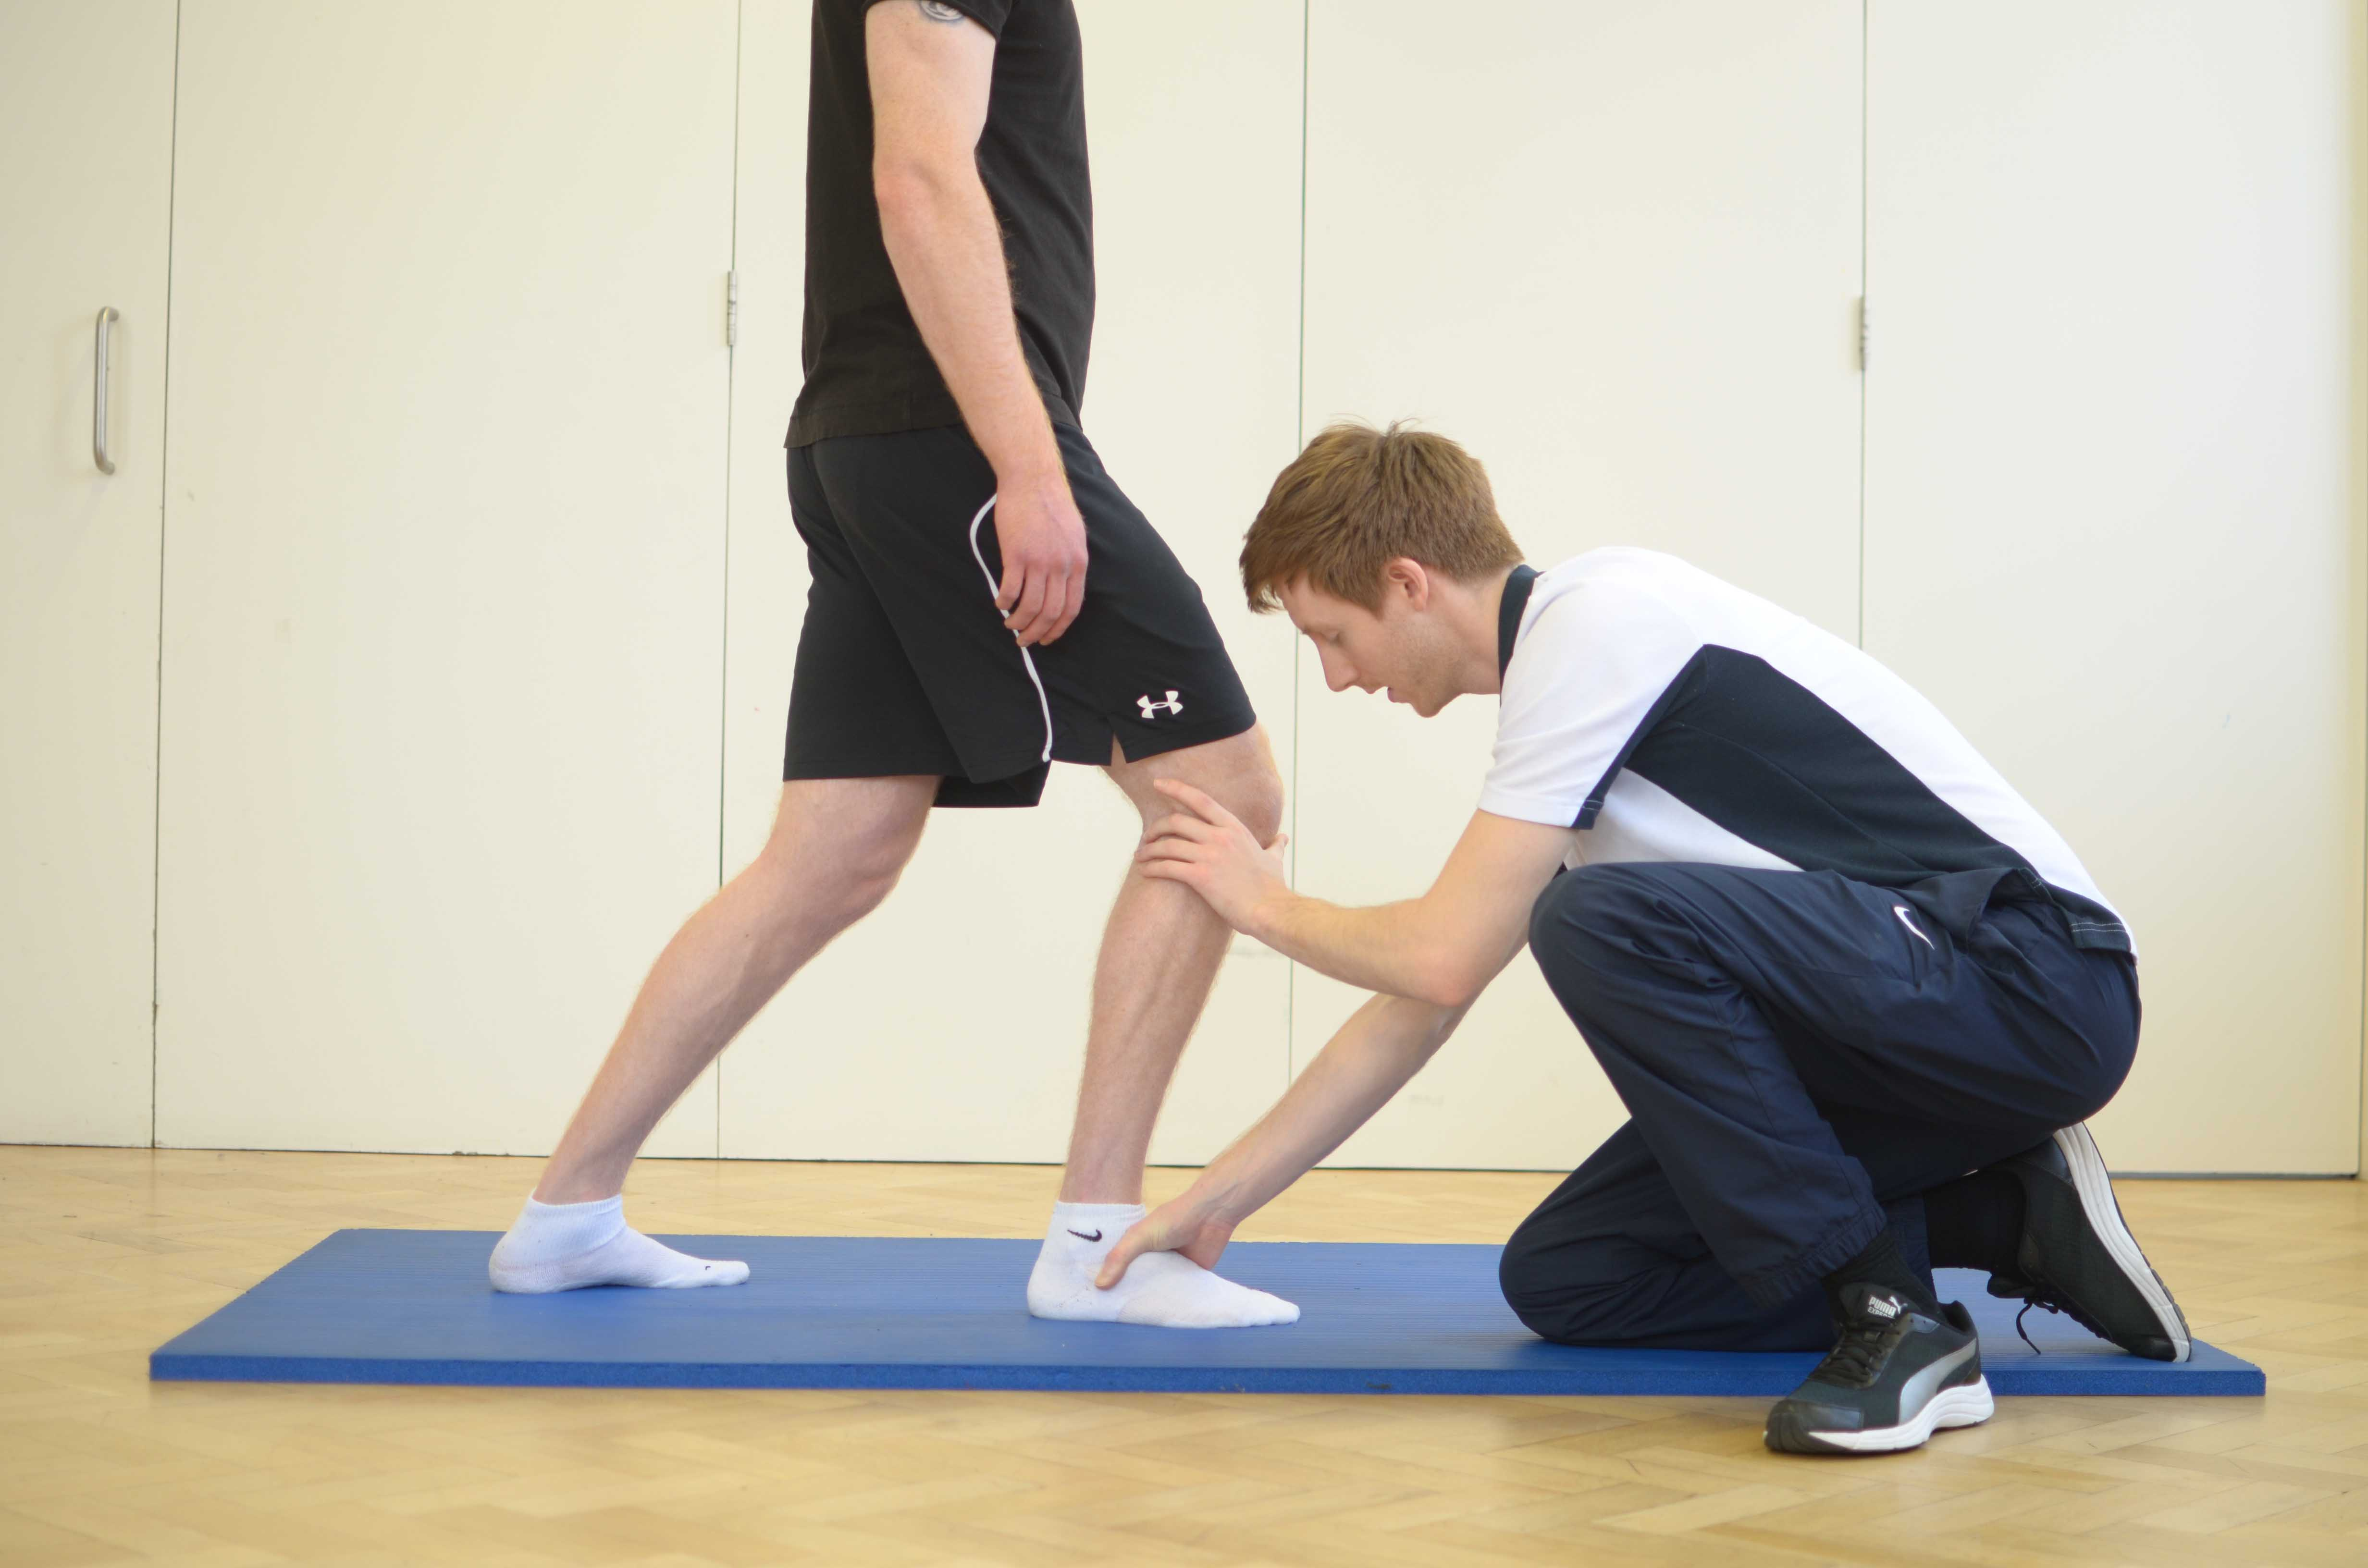 mobilisations and stretches of the foot and ankle